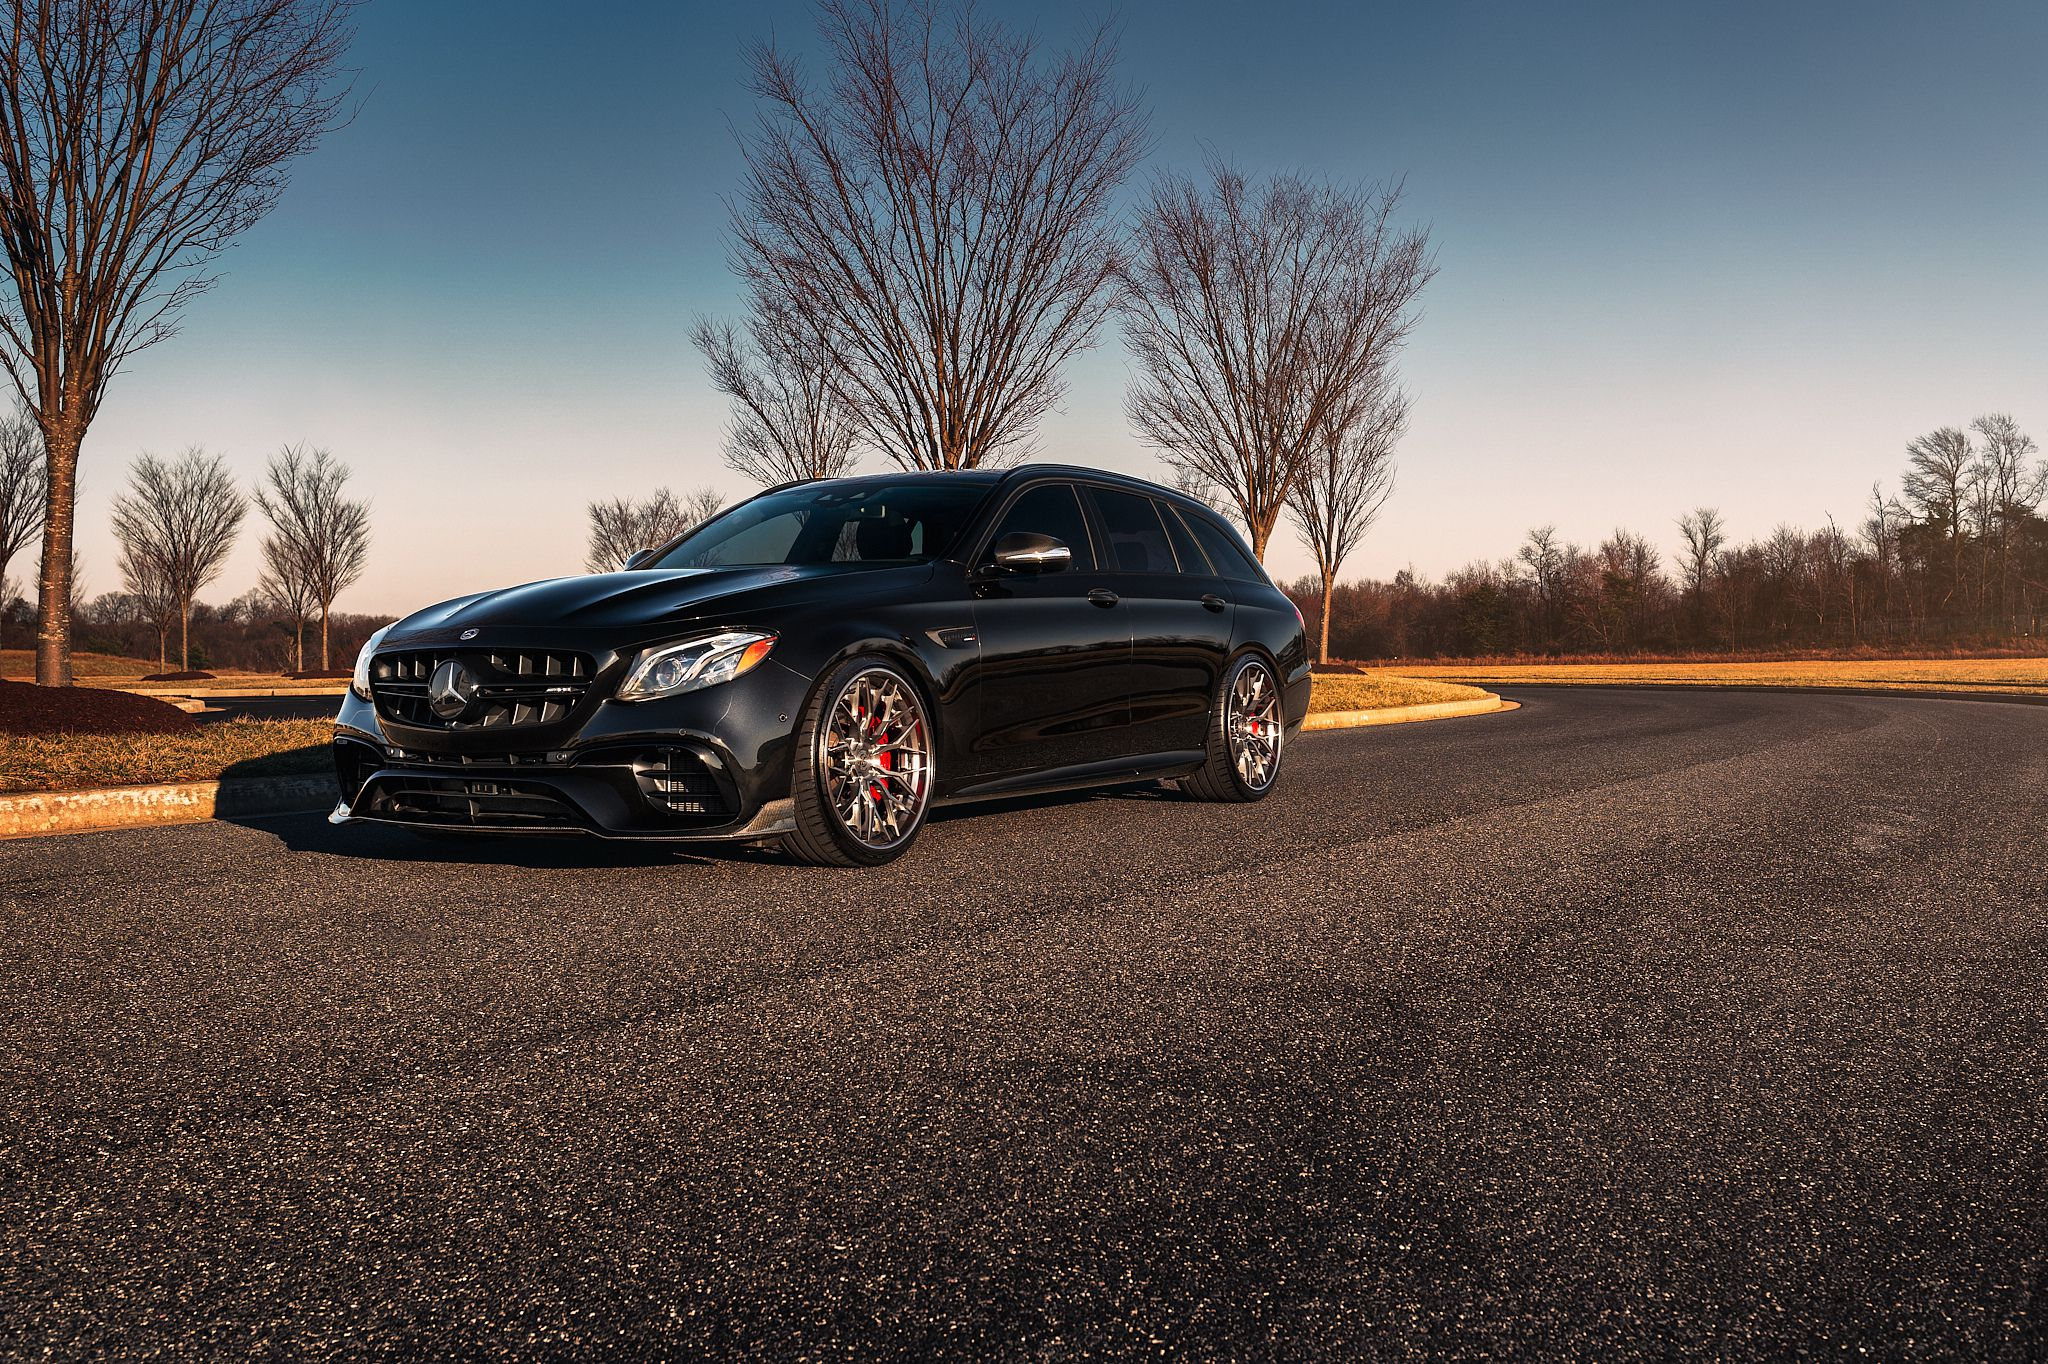 Mercedes E63s AMG Avant on silver wheels